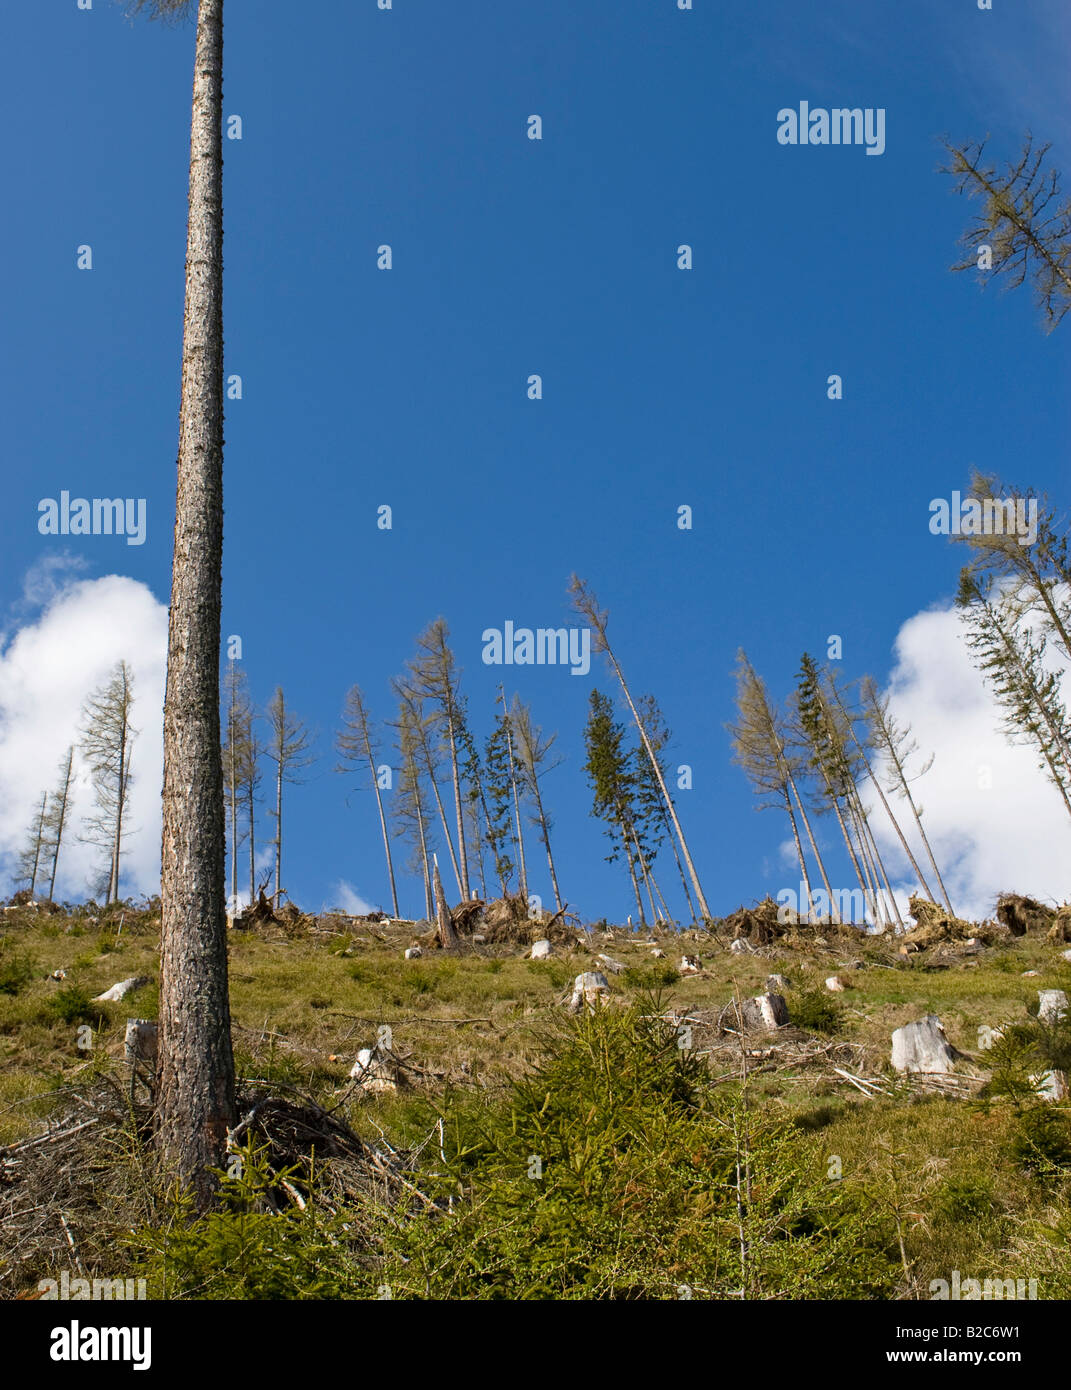 Mountainside with tree stumps after storm, Styria, Austria, Europe - Stock Image